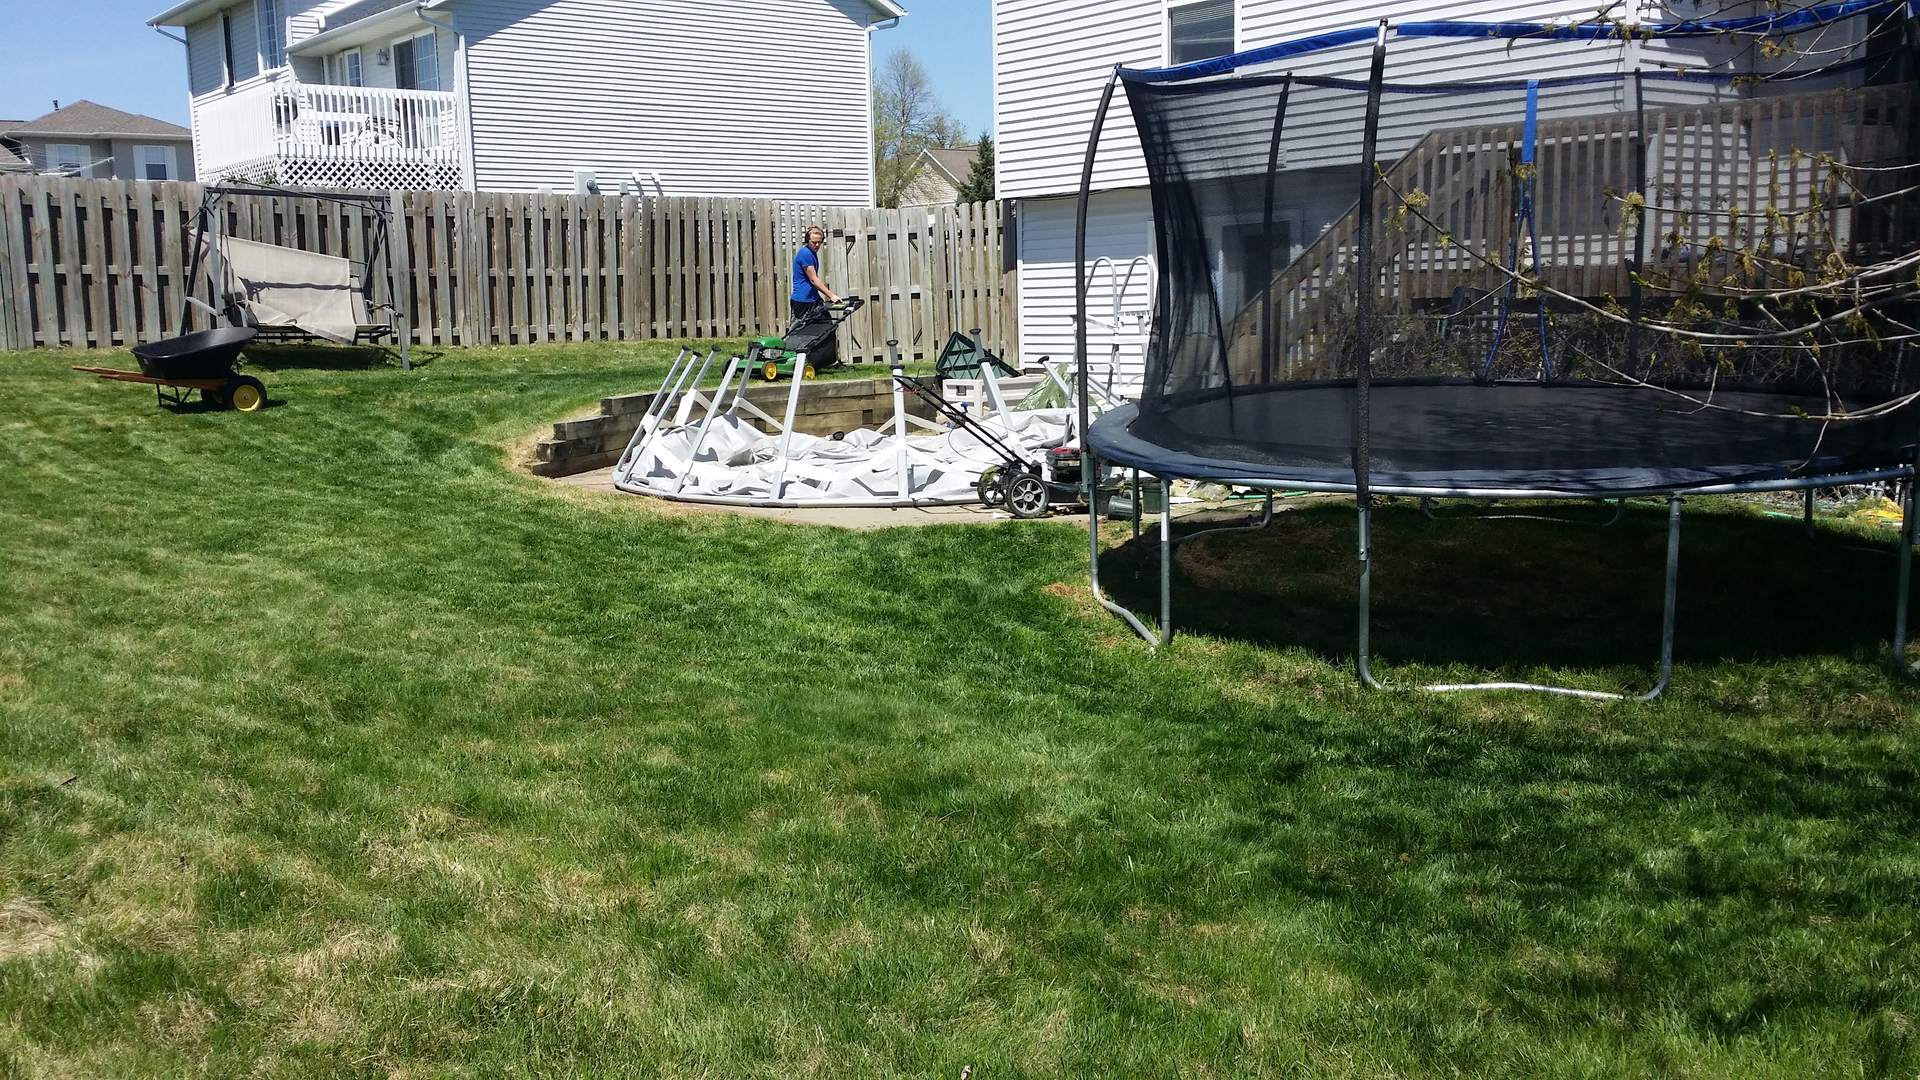 our story - Toms Lawn And Garden